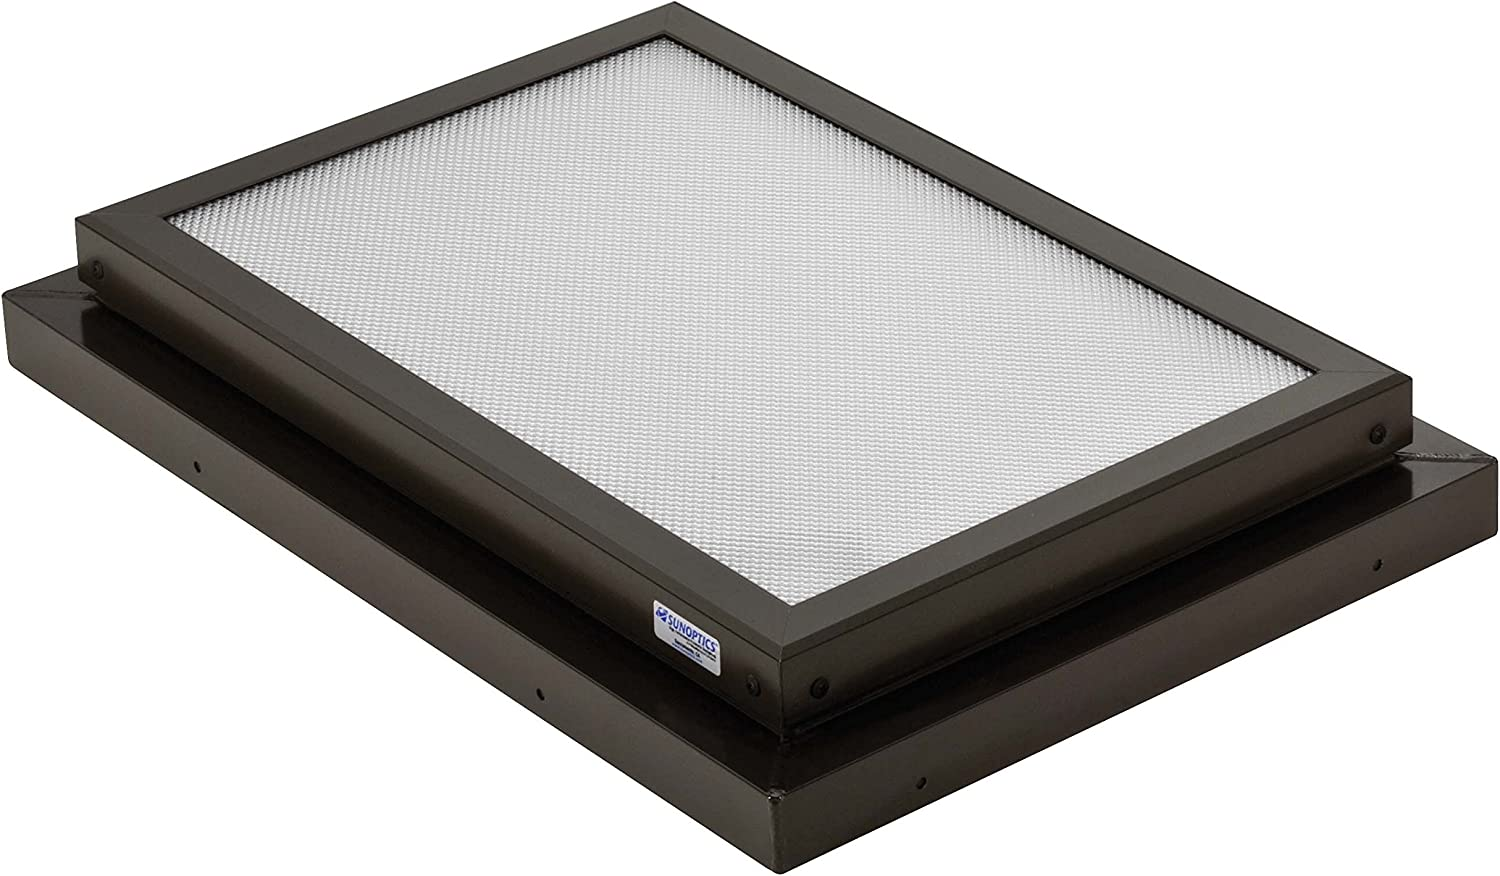 Sunoptics SUN R2030 FLAT TGZ 50CC2 800MD BZ 2-Feet by 3-Feet Triple Glazed Fixed Curb-Mounted Prismatic Flat Skylight, Bronze